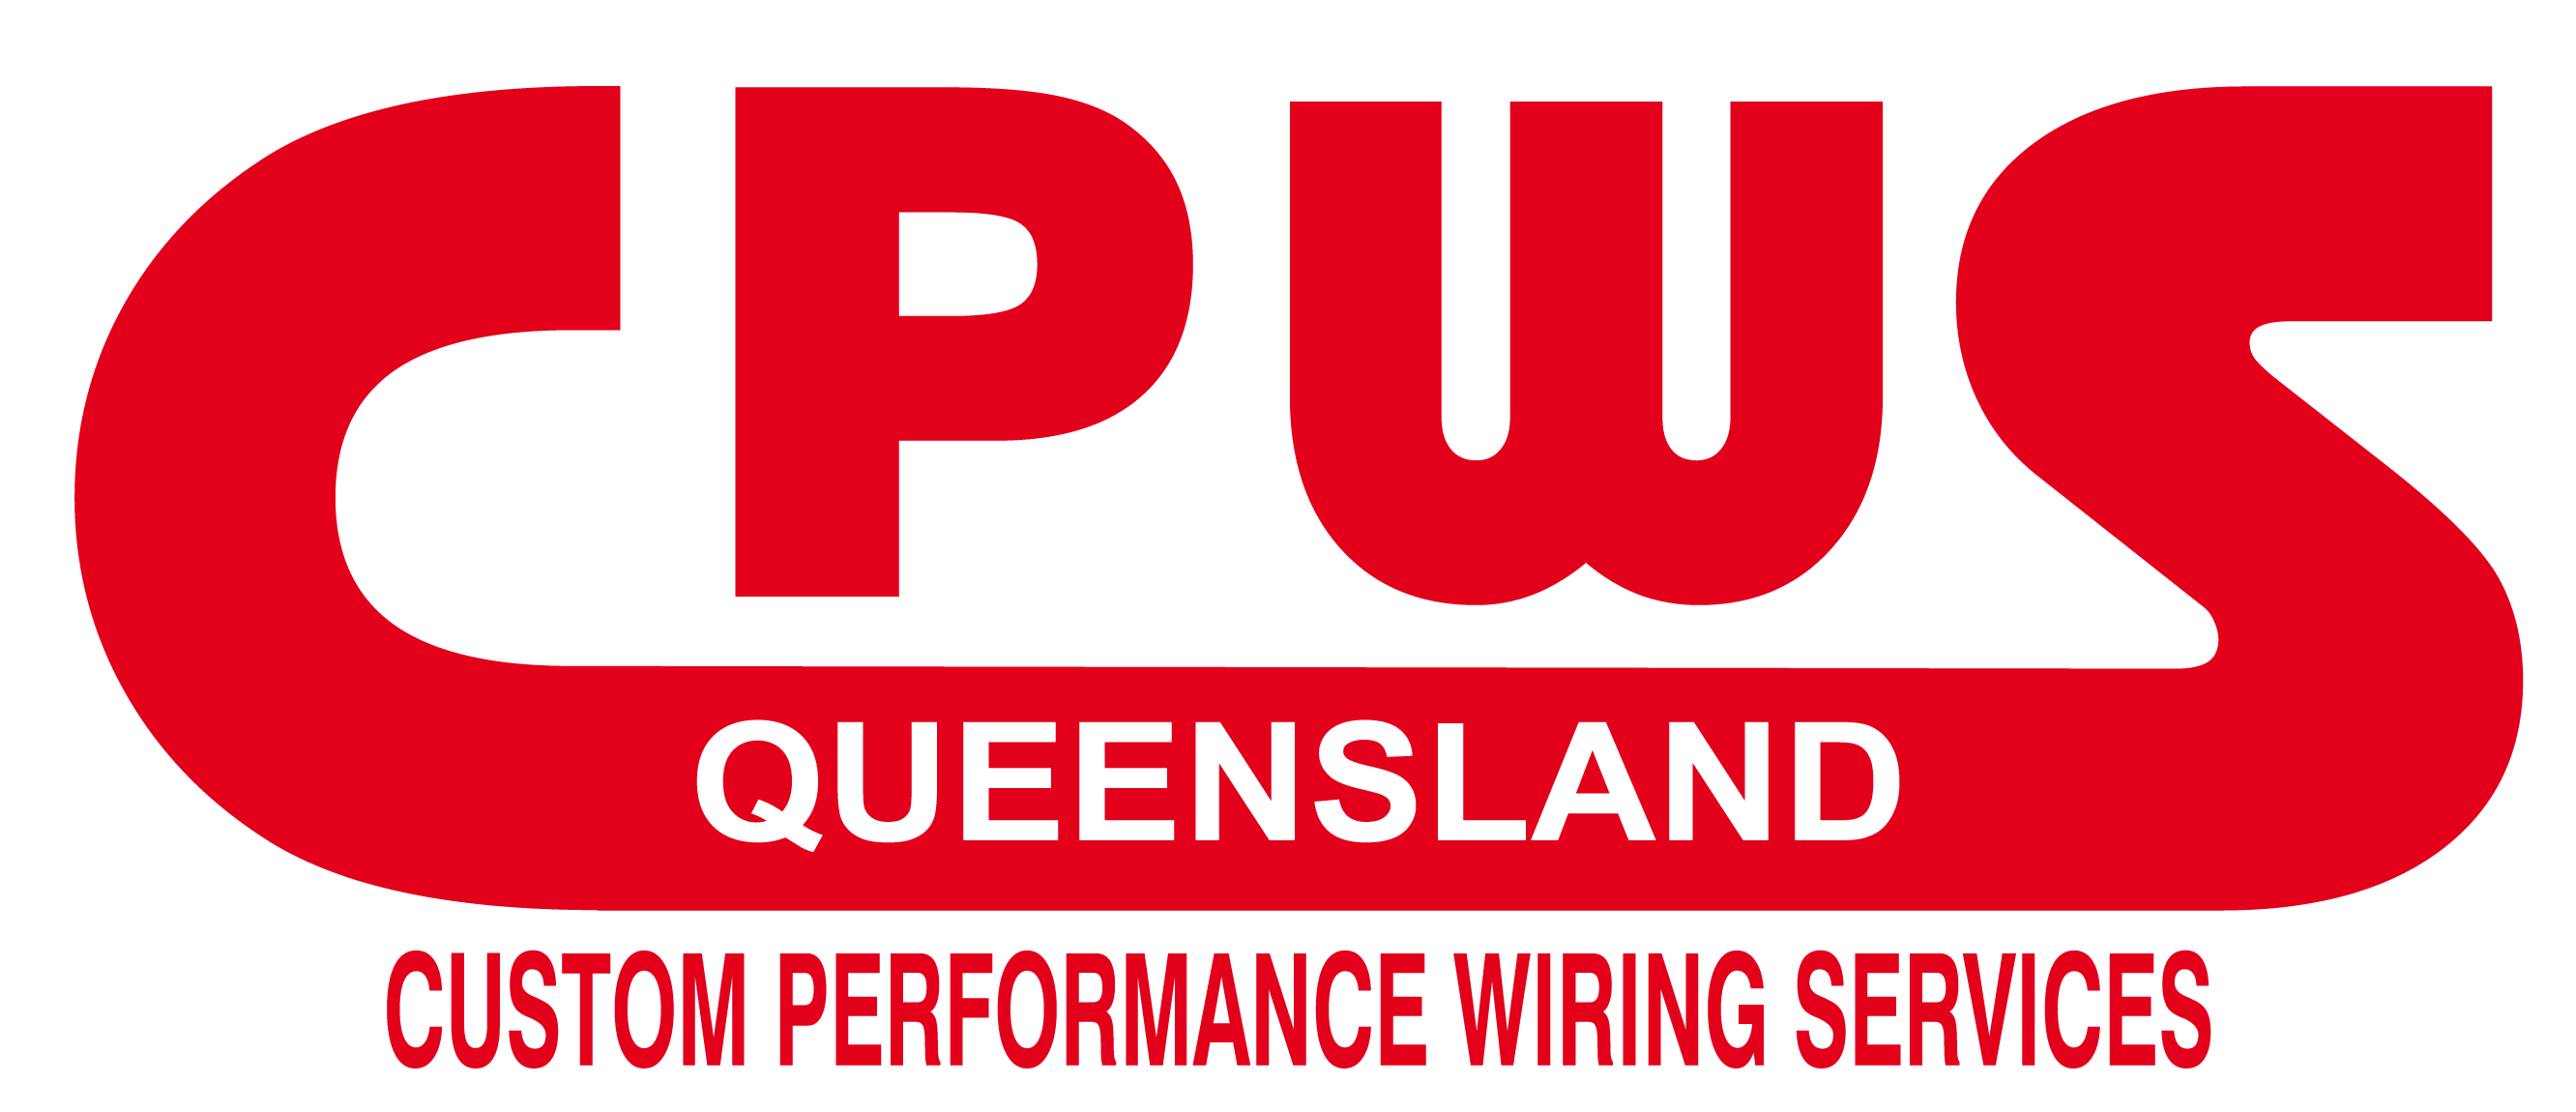 CPWS Queensland logo | Trans Am 2 Racing